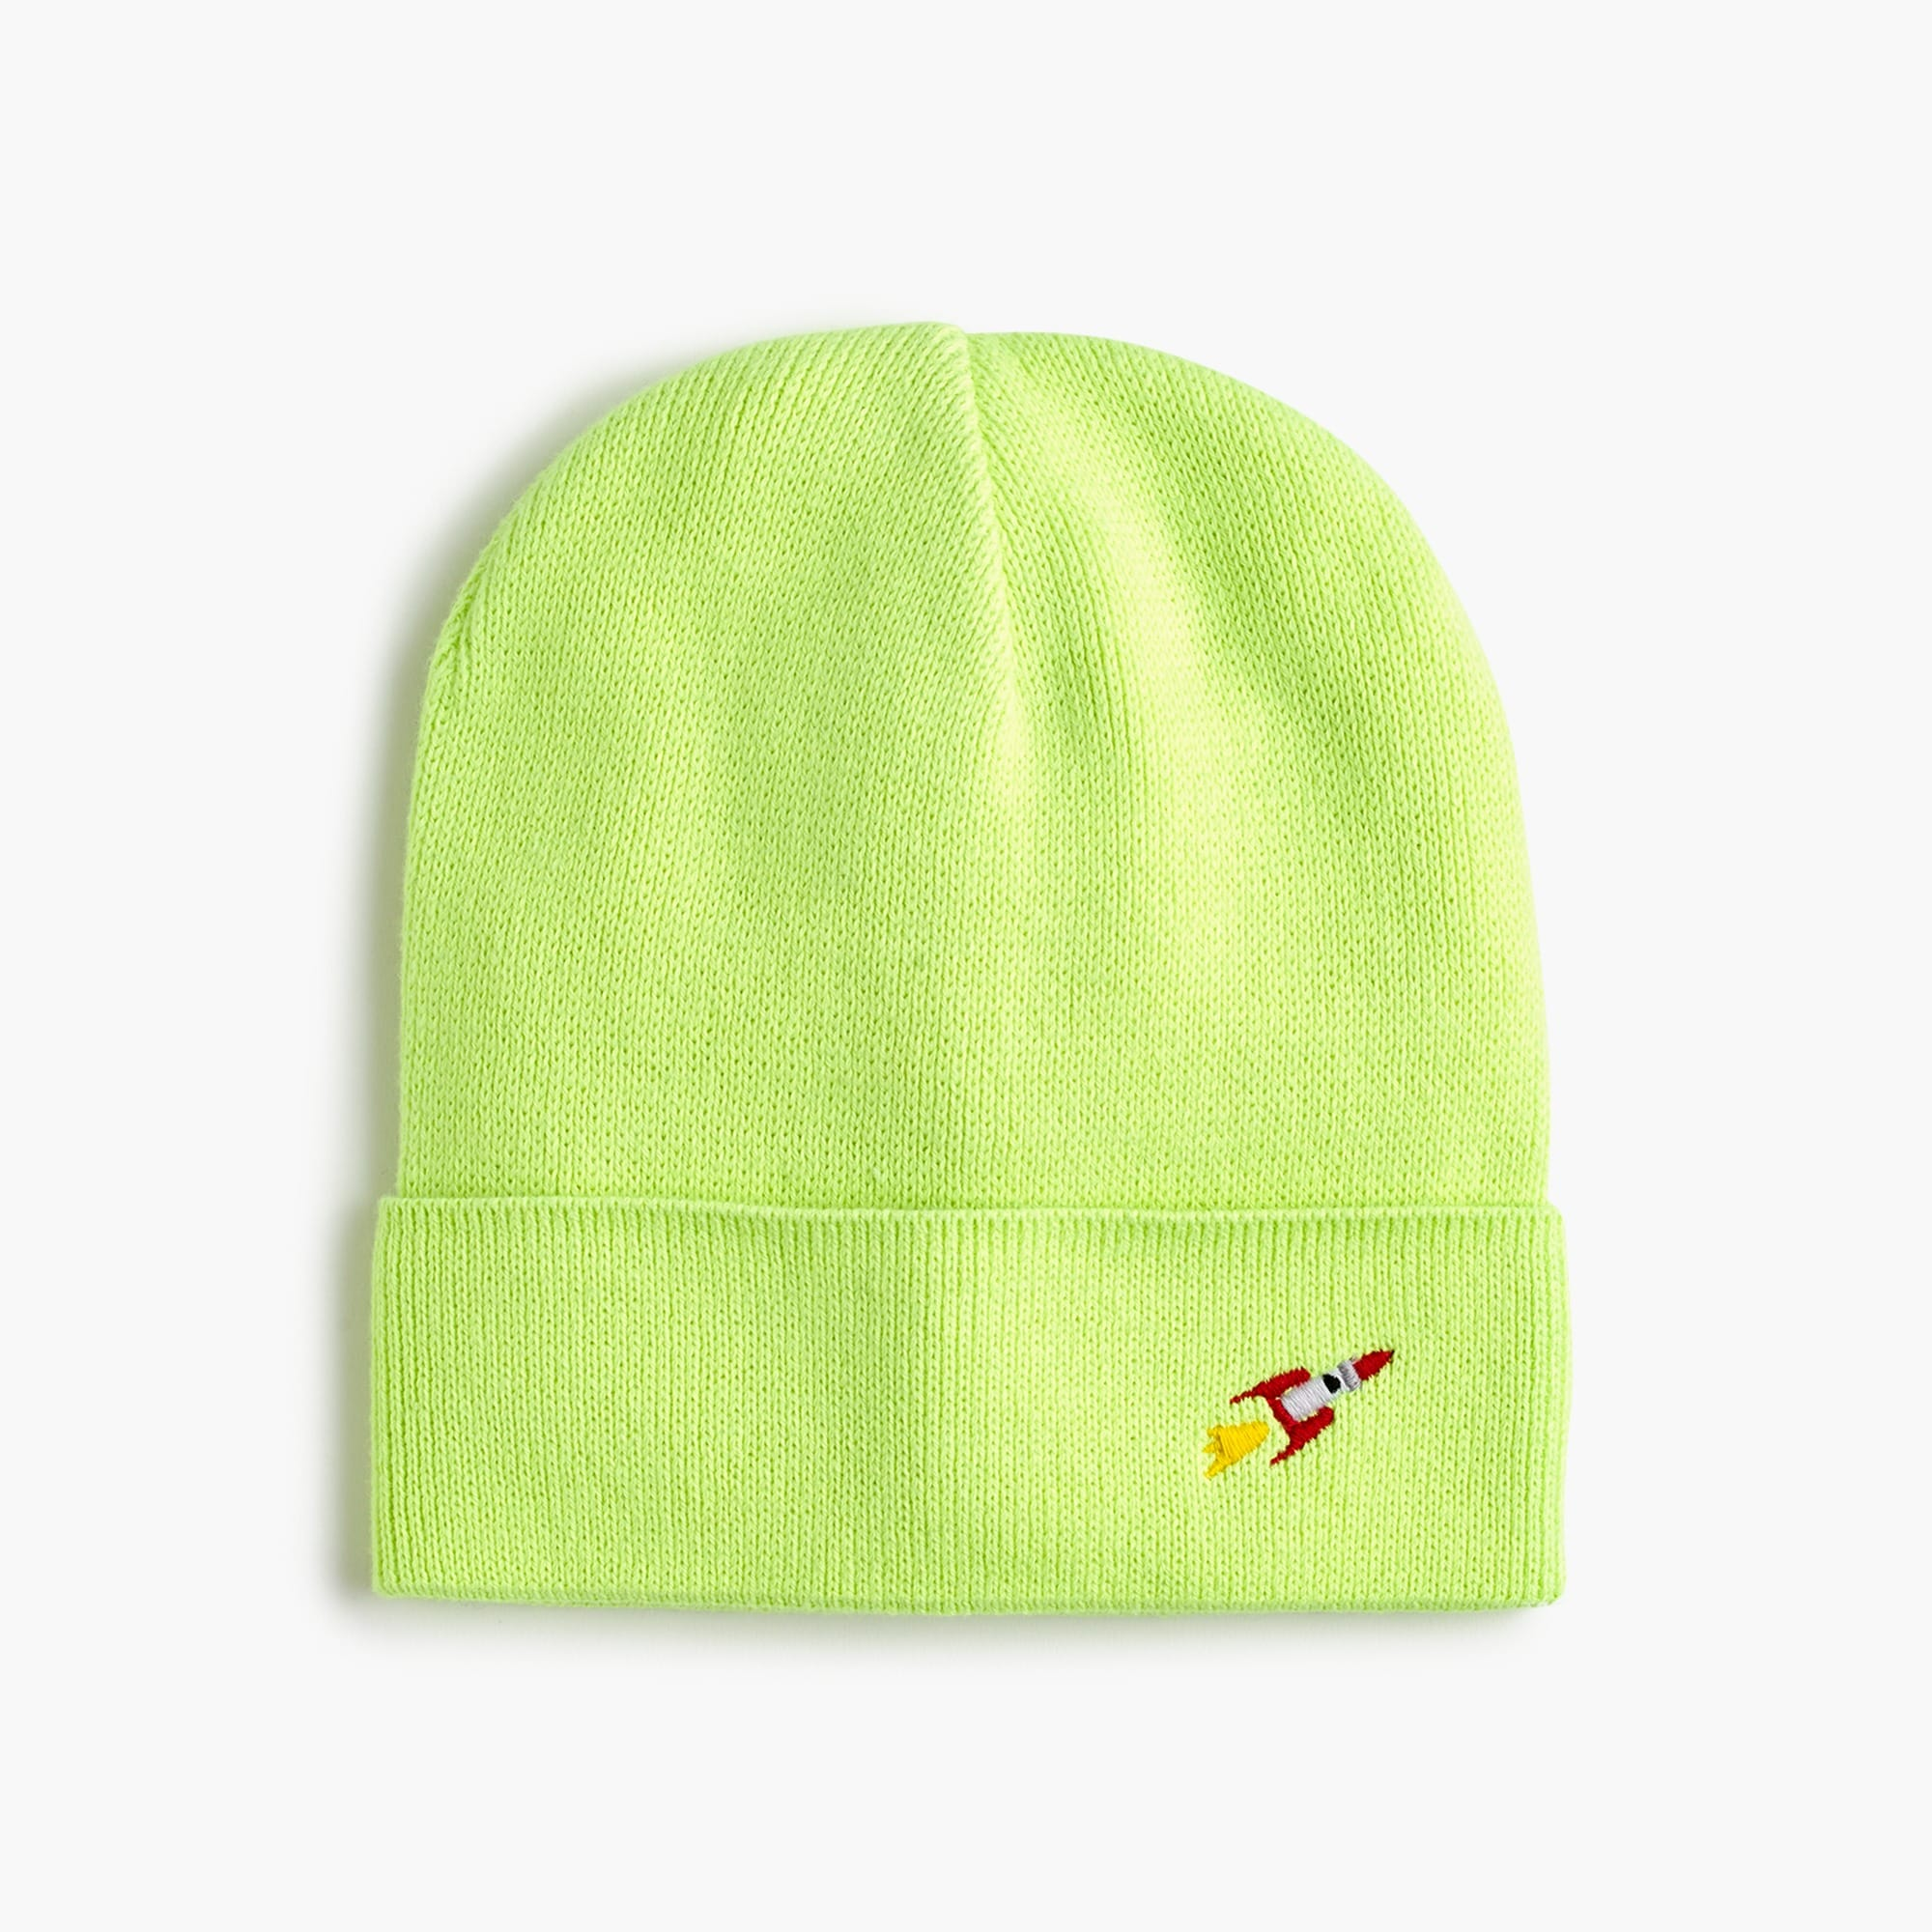 Kids' critter beanie boy accessories c